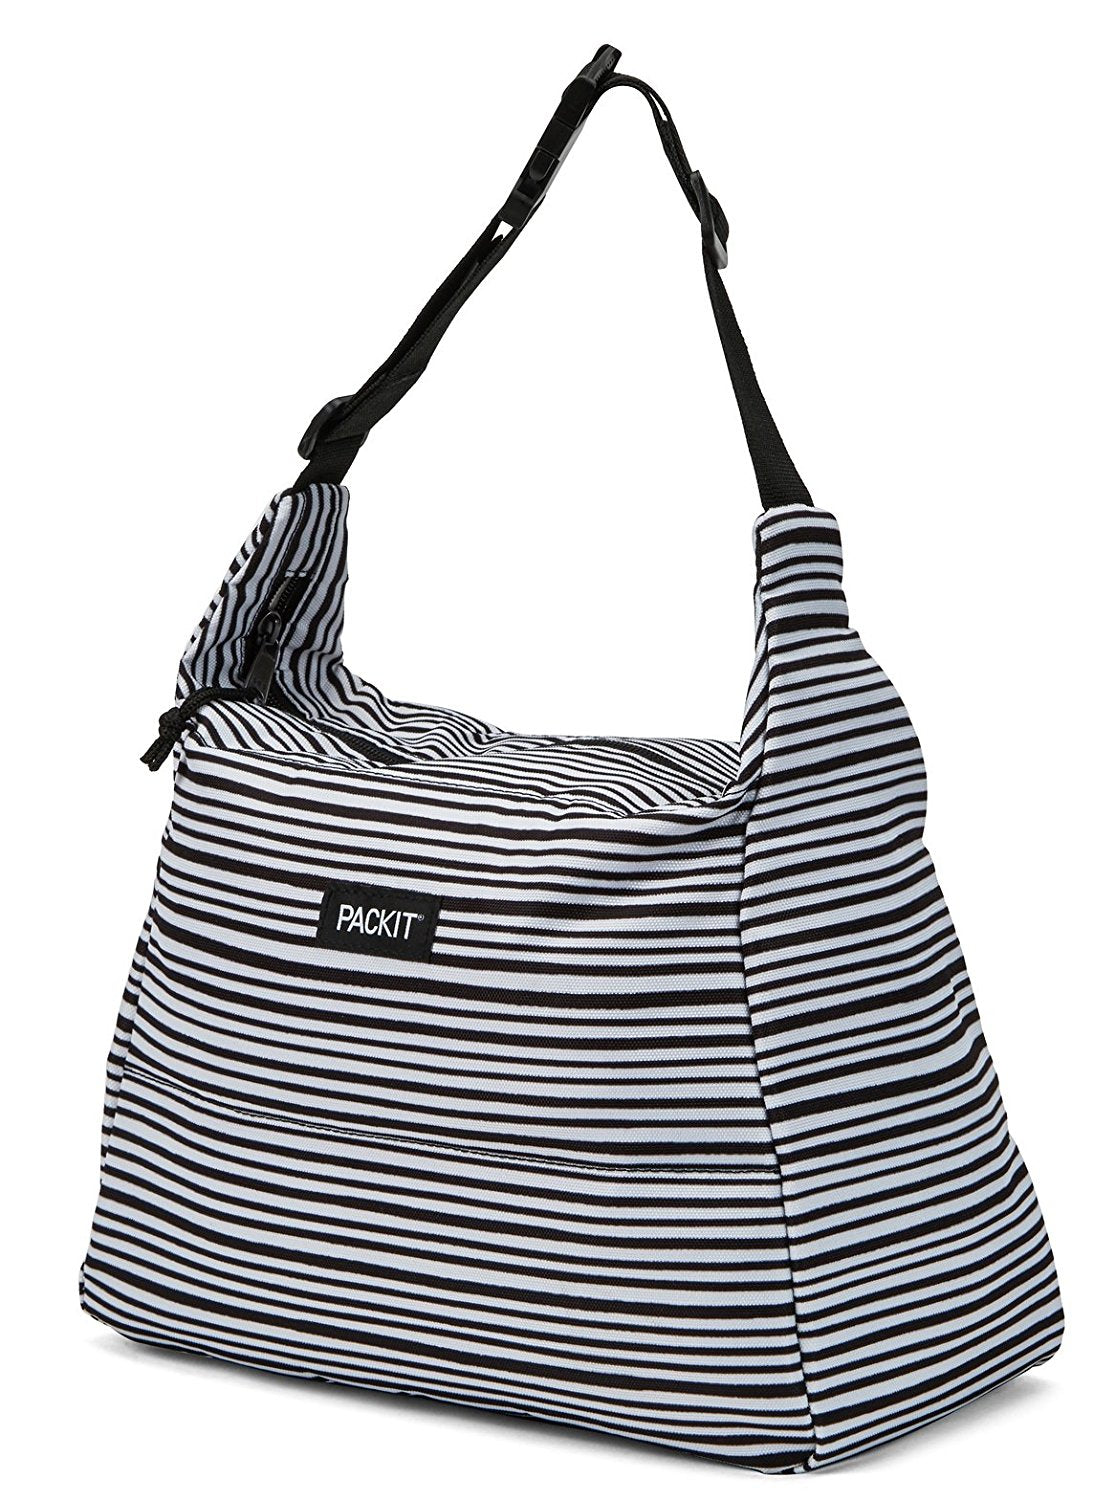 Packit Freezable Hobo Lunch Bag